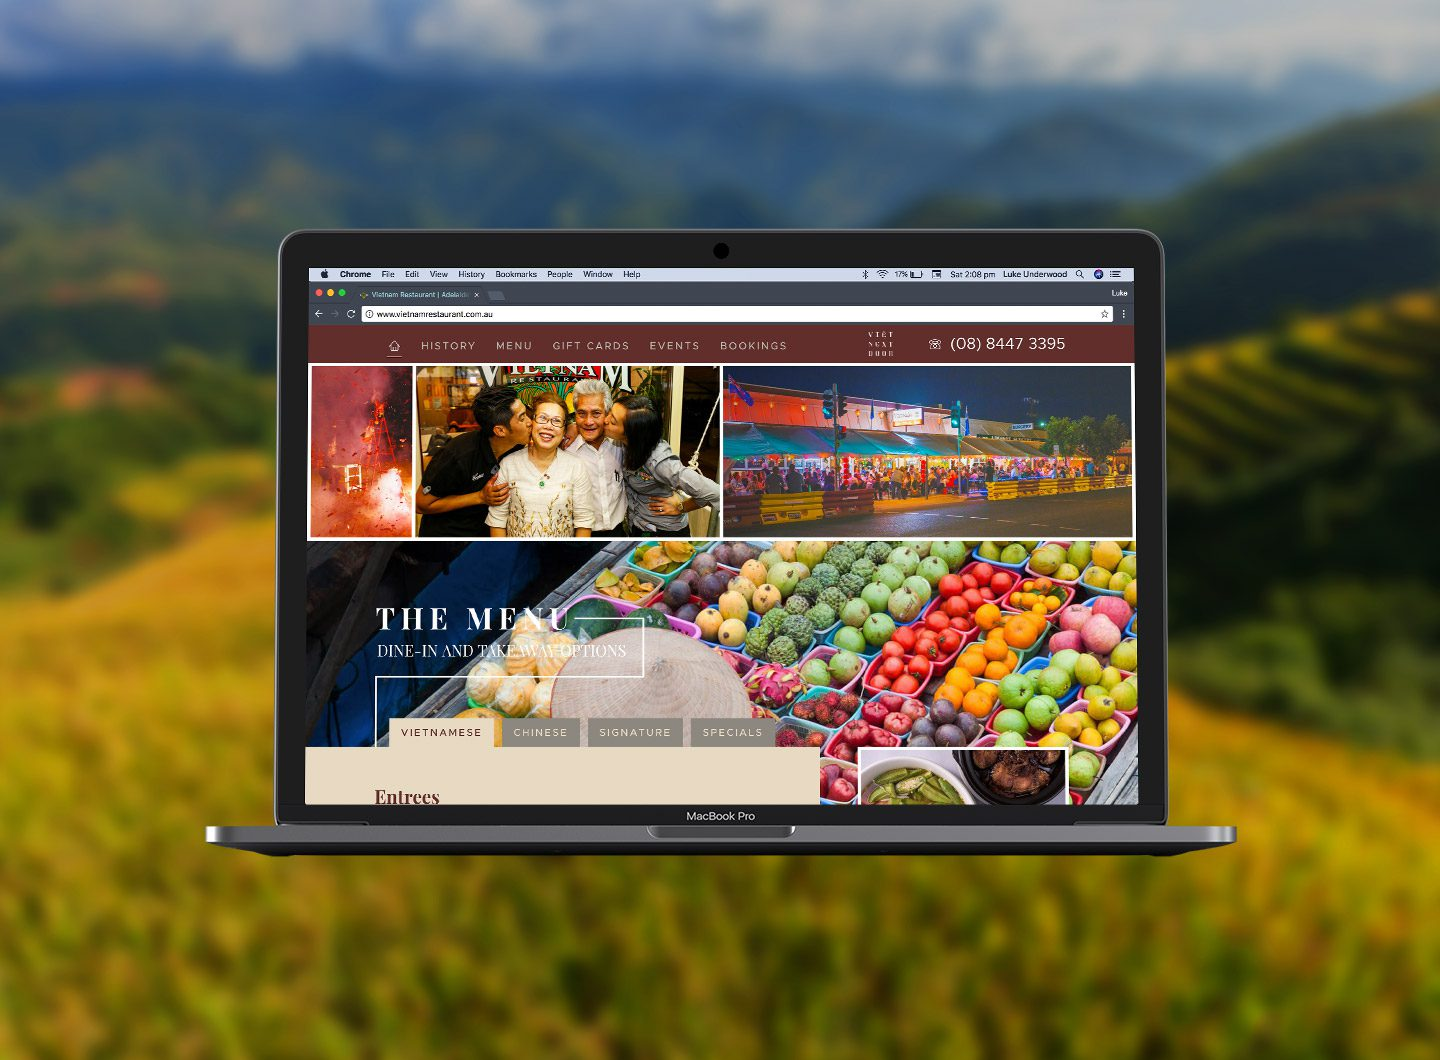 A screen showing the website design for Vietnam Restaurant